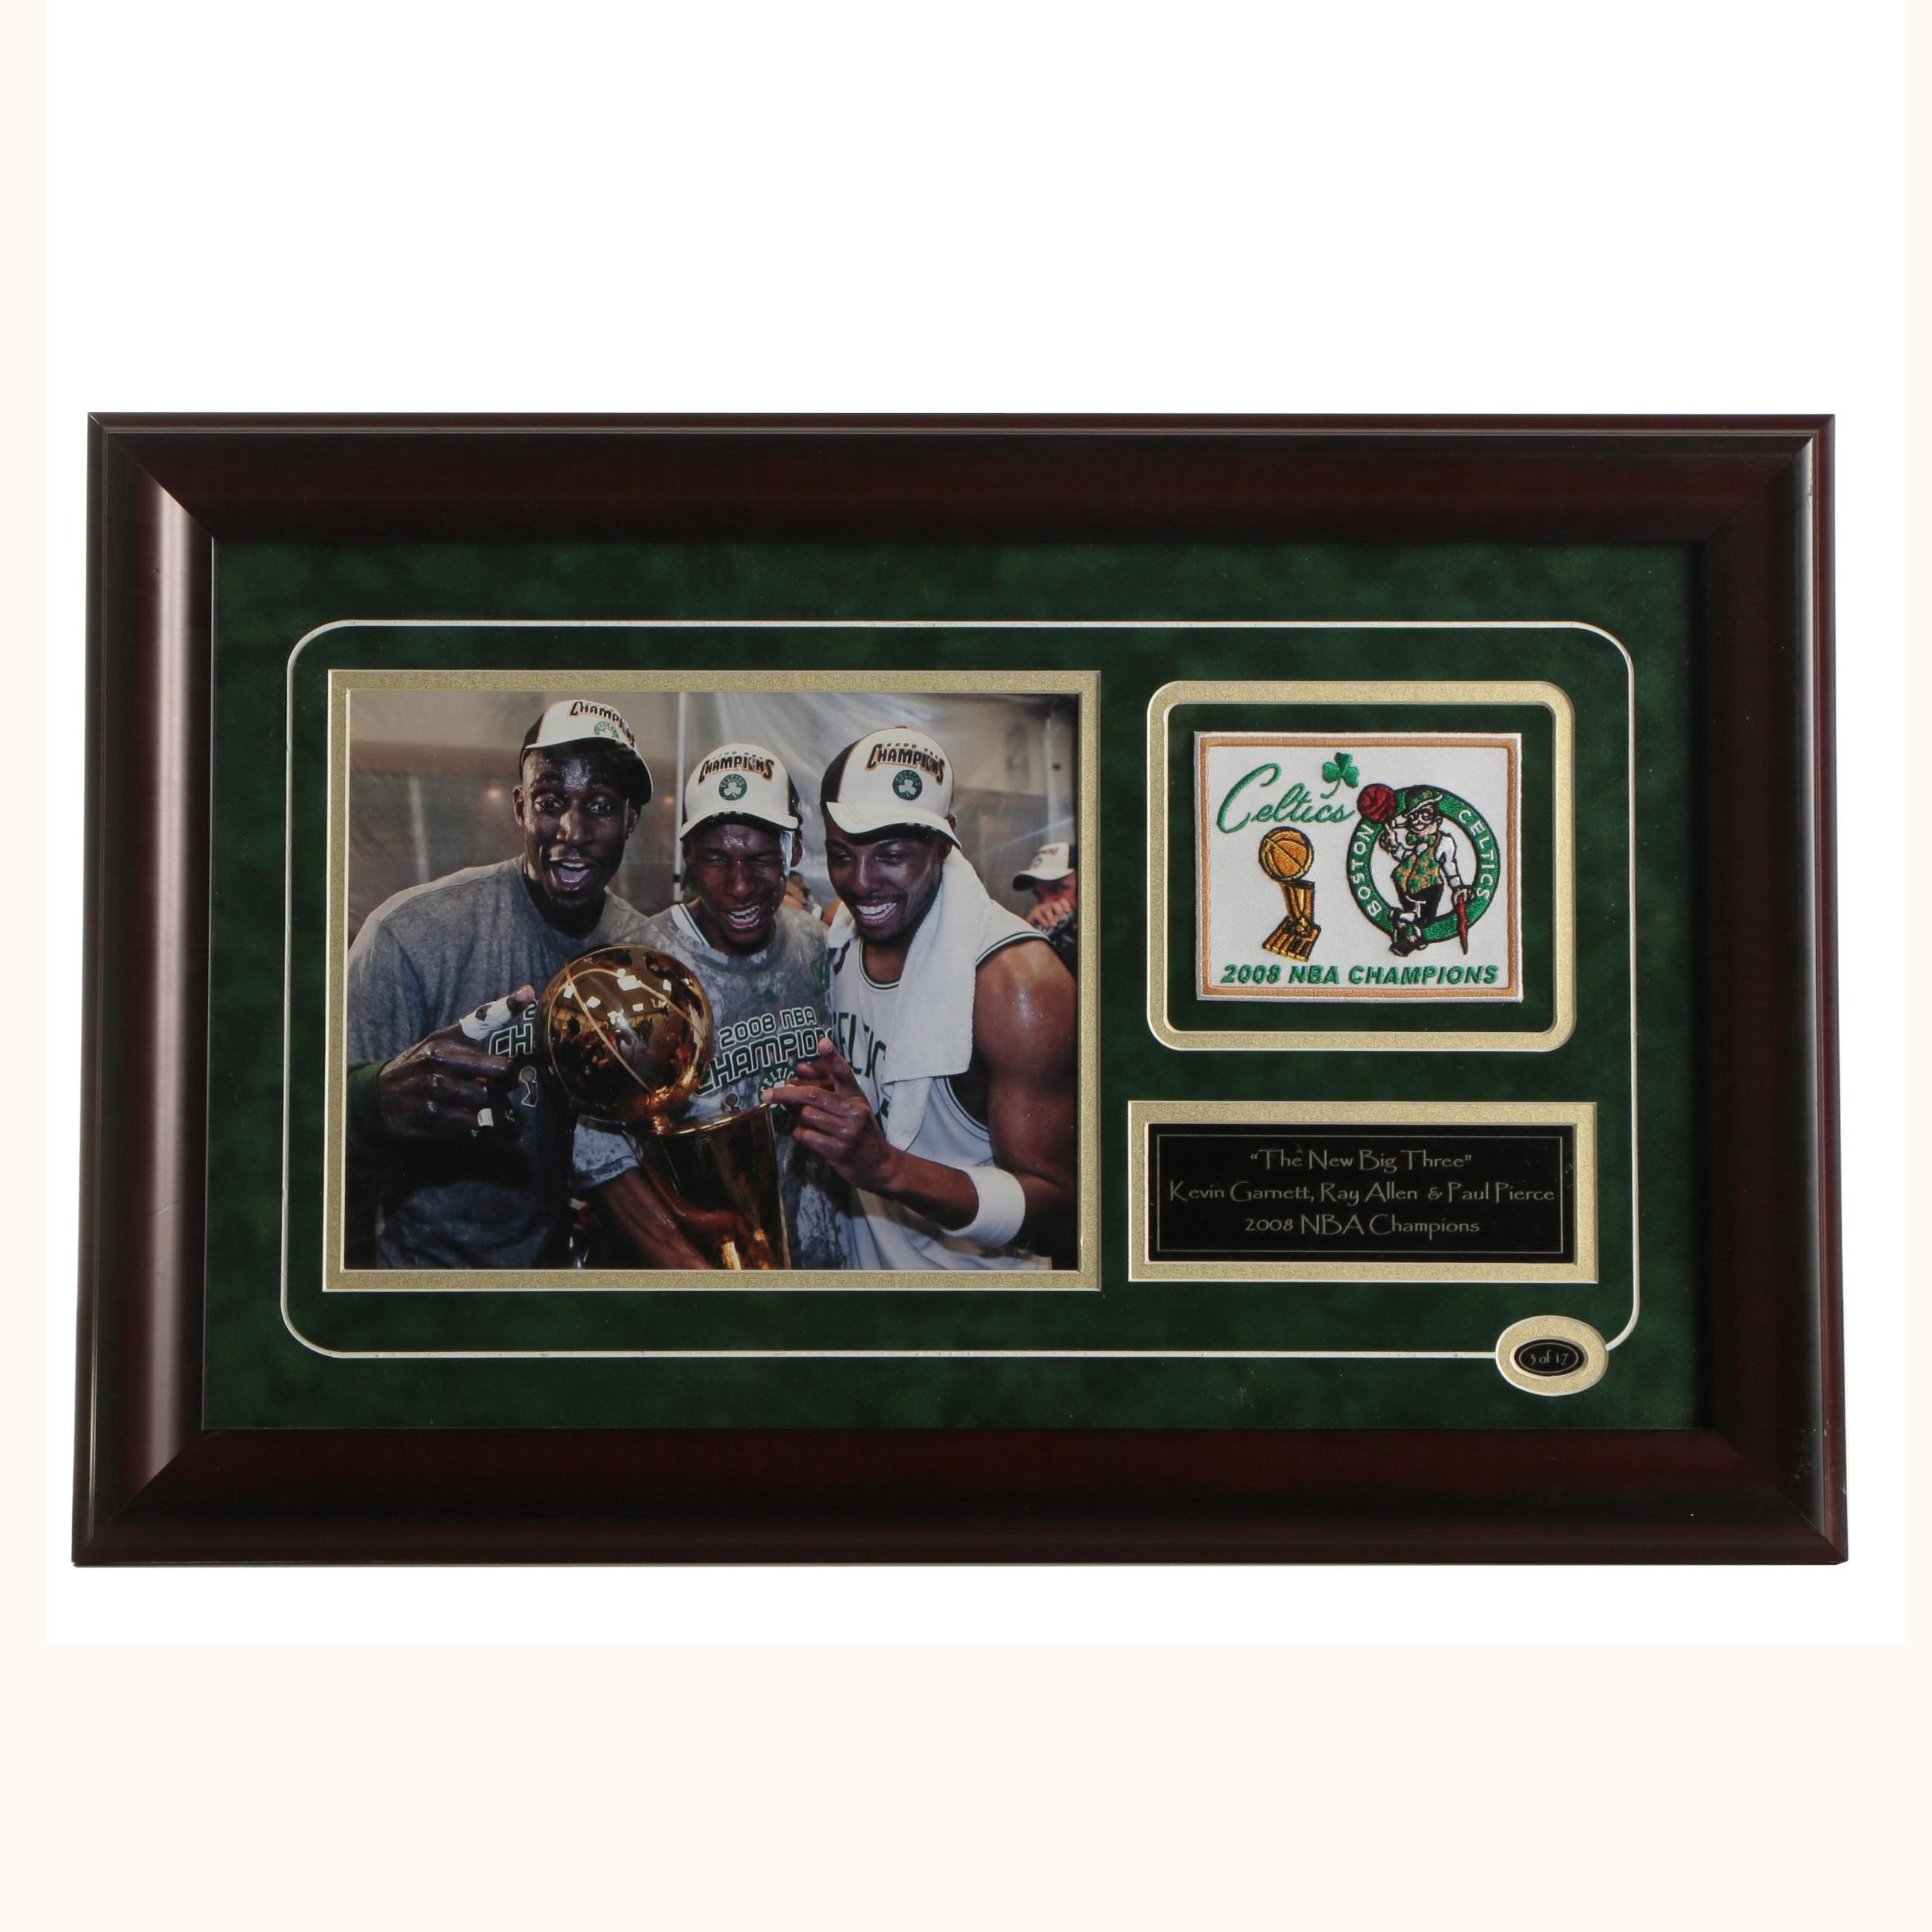 2008 Boston Celtics NBA Champions Framed Memorabilia